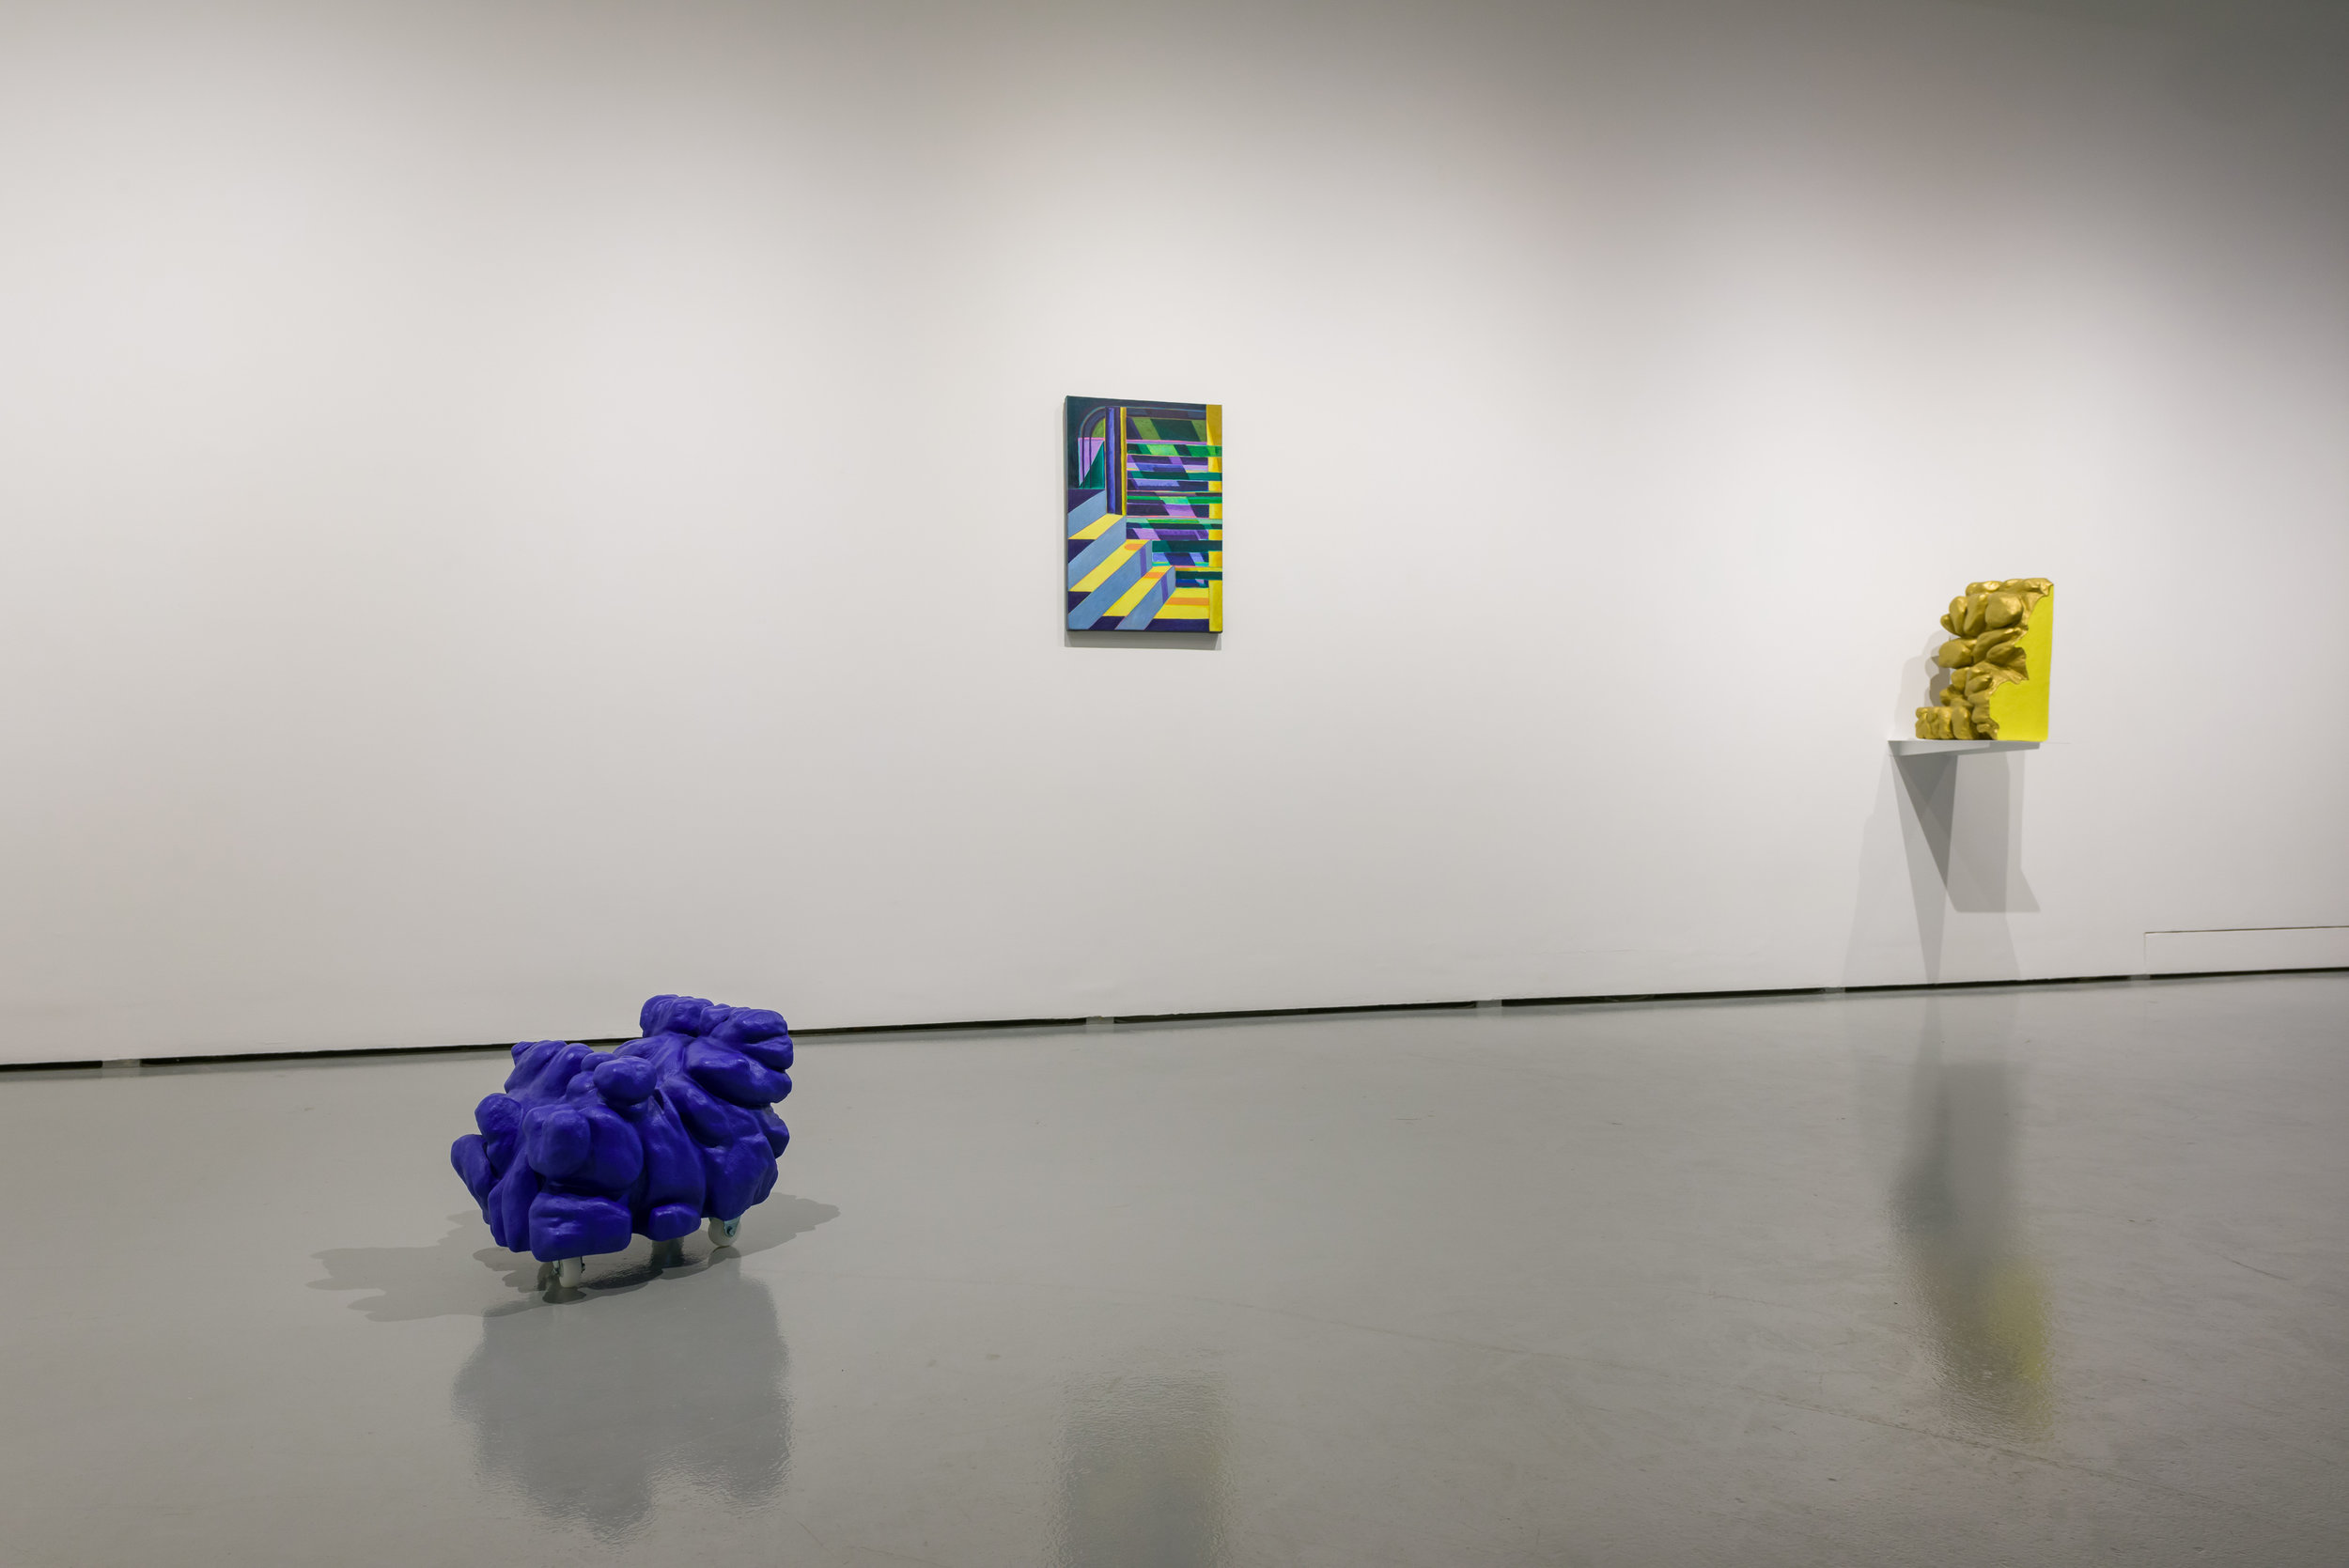 Installation view of 'head heap heat' at the Institute of Contemporary Arts Singapore, 2018